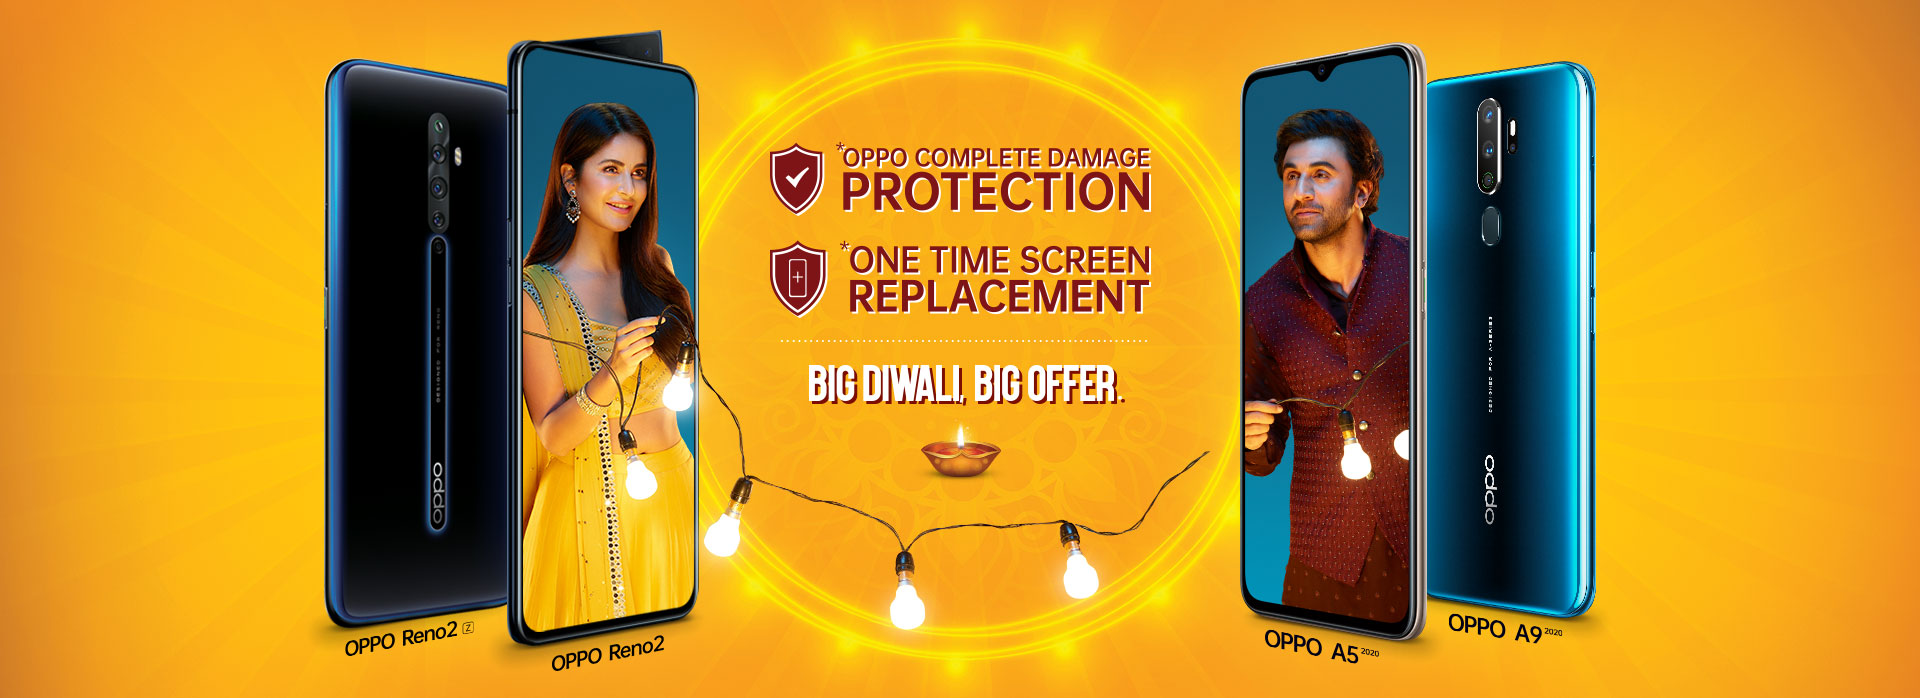 OPPO adds to festive cheer with Big Diwali, Big Offer